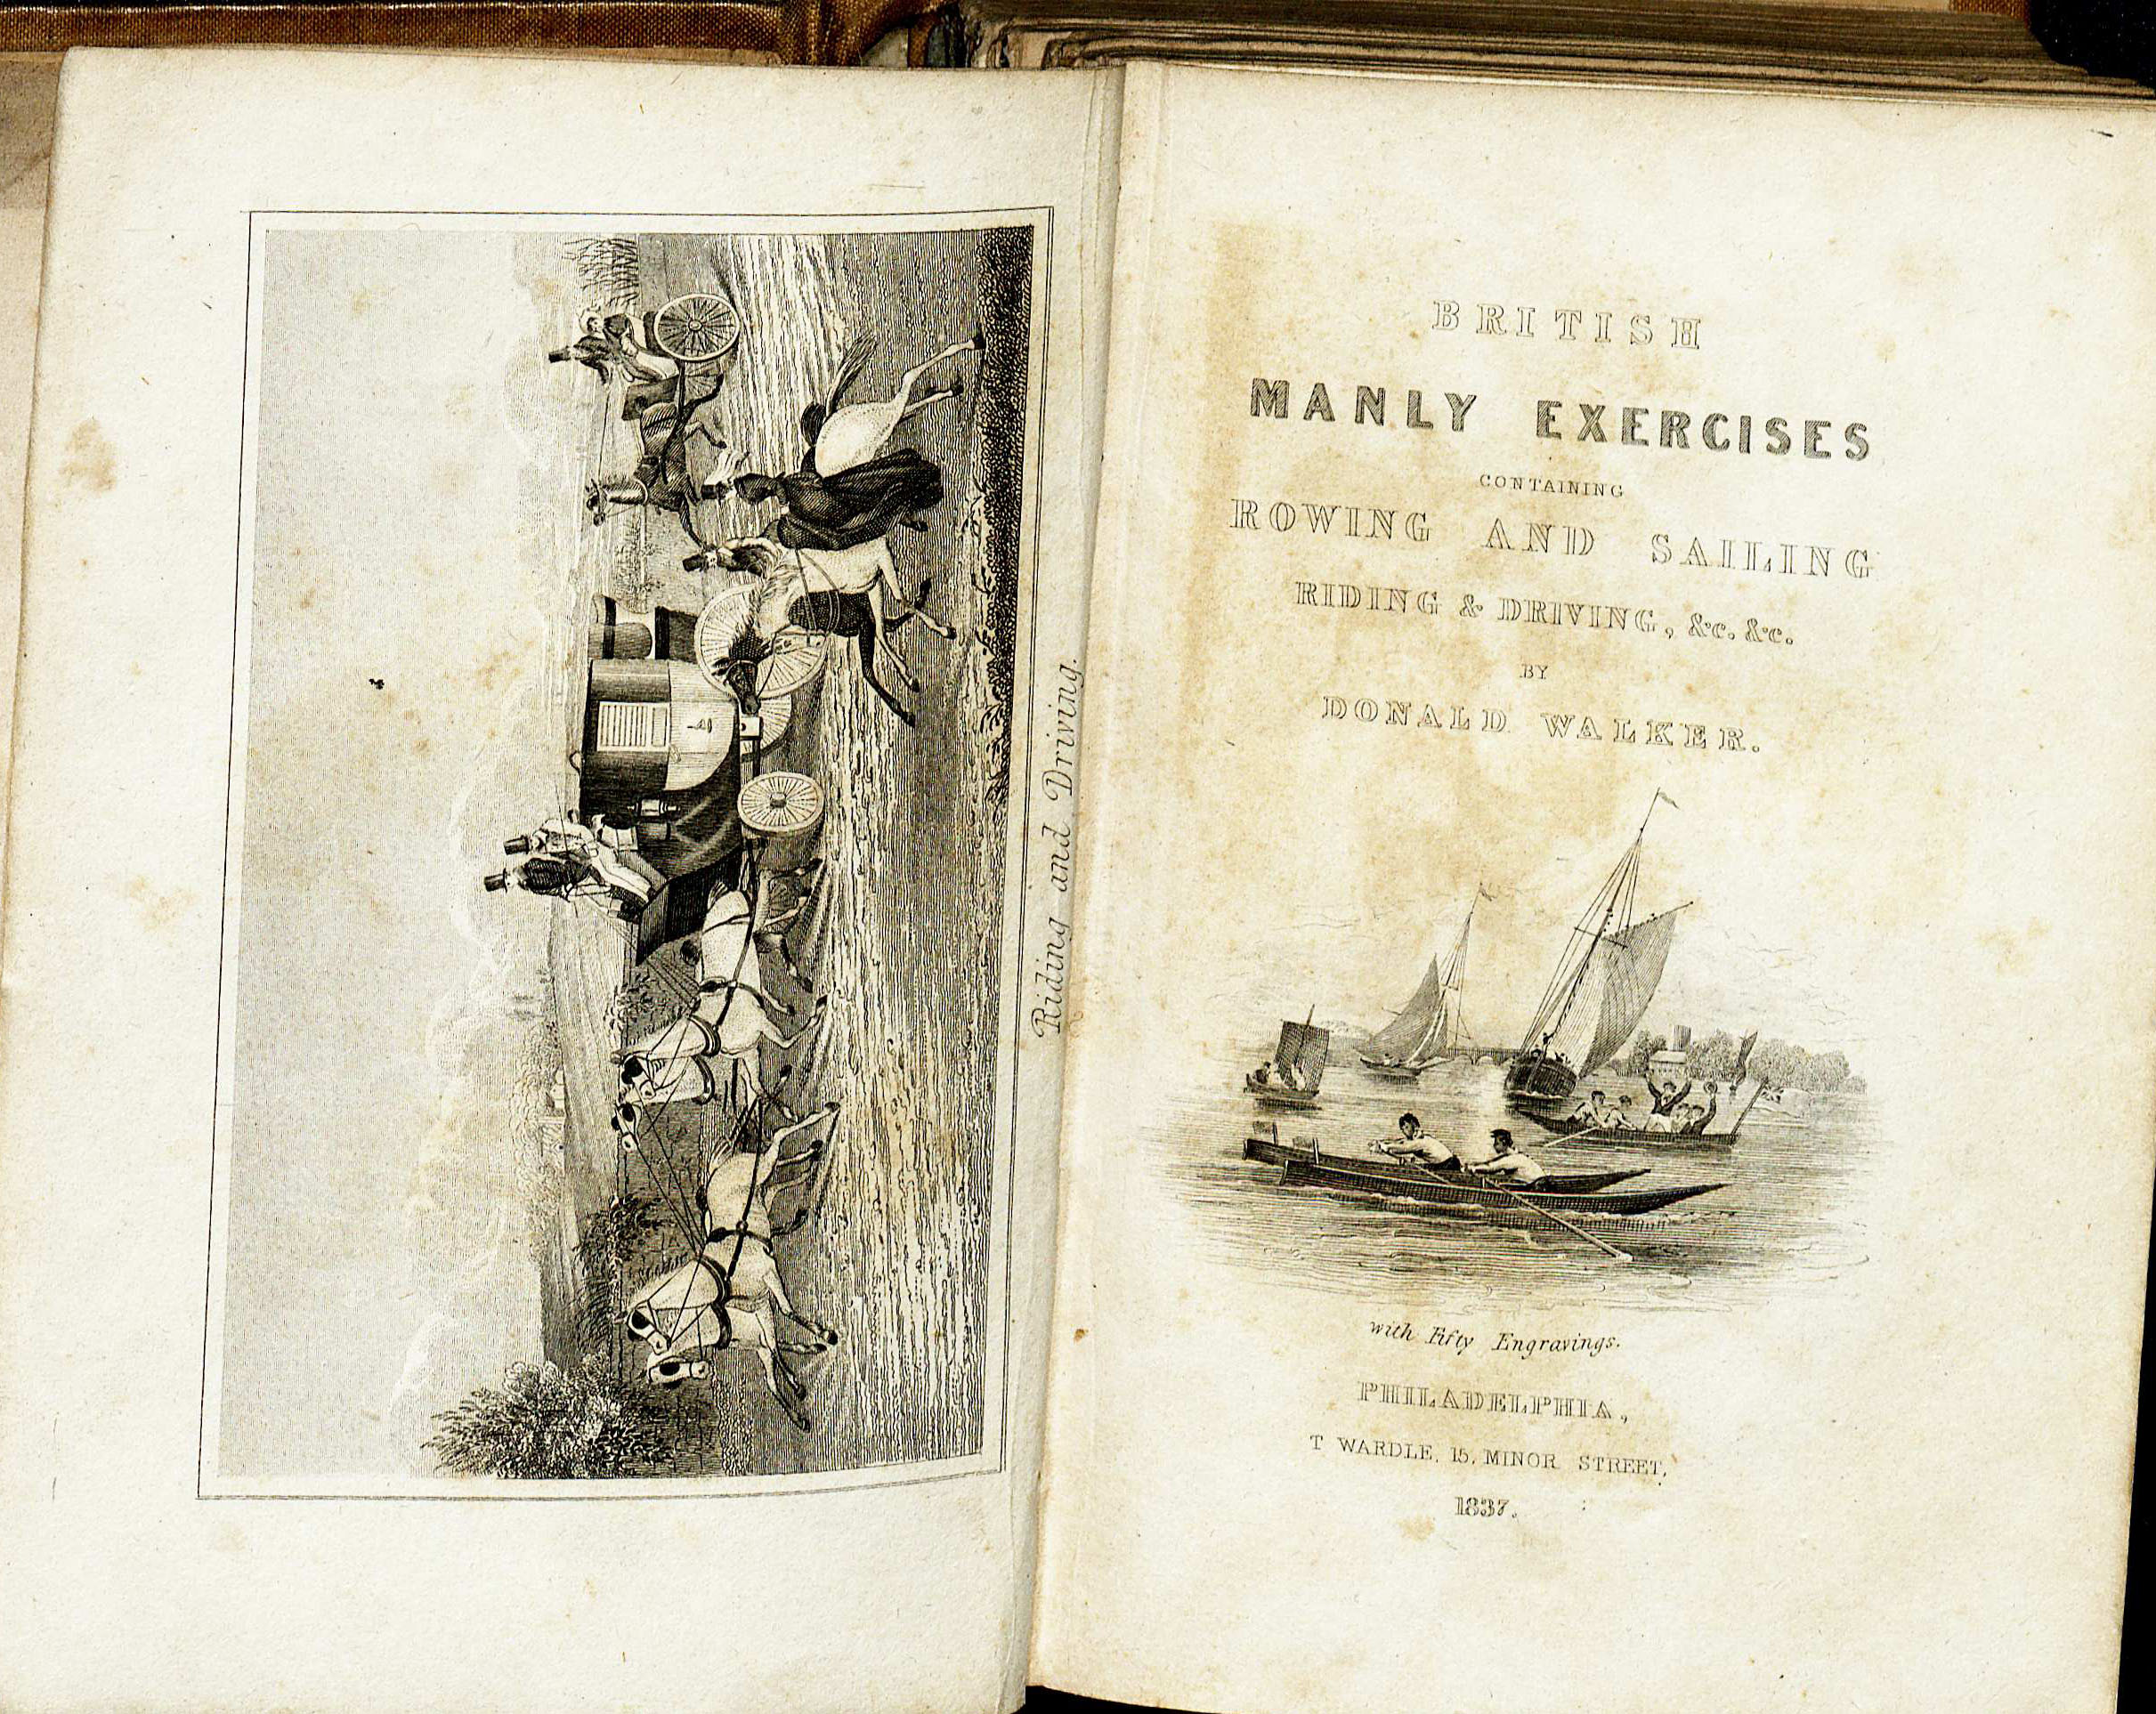 Frontispiece and title page of British Manly Exercises by Donald Walker. (GV703.W3 1837. Image by Anne Causey )